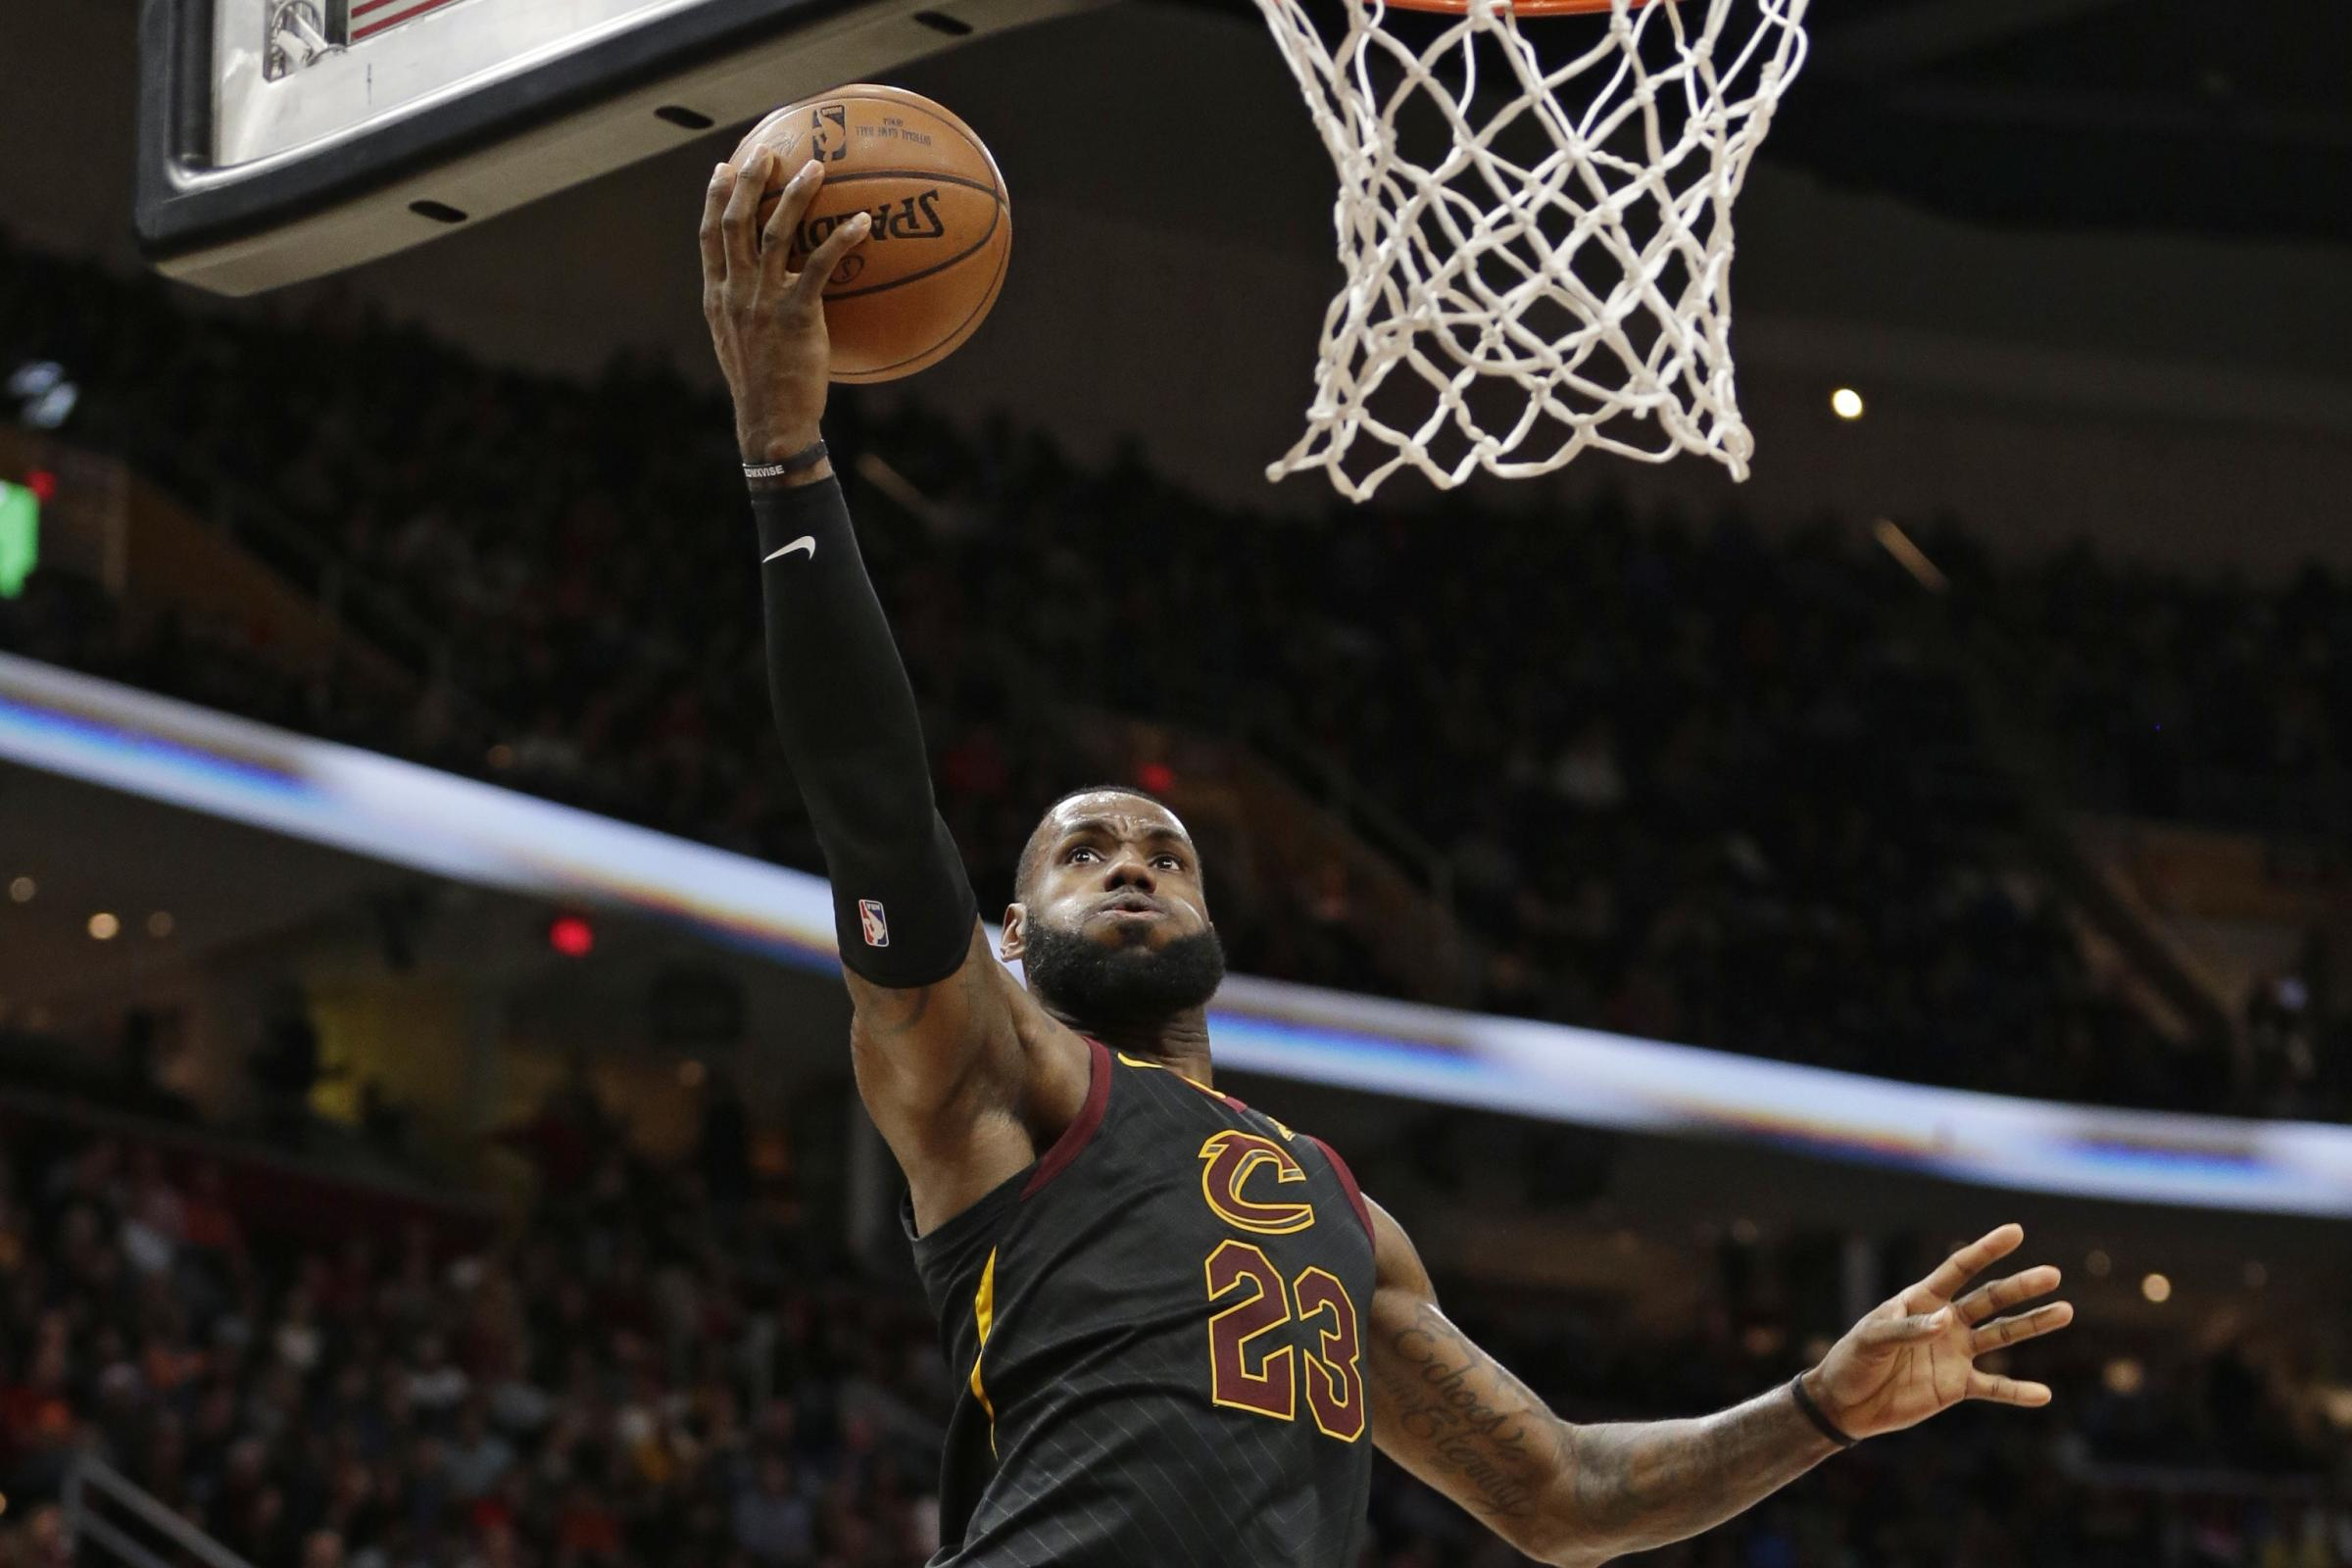 LeBron James, left, drives to the basket (Tony Dejak/AP)